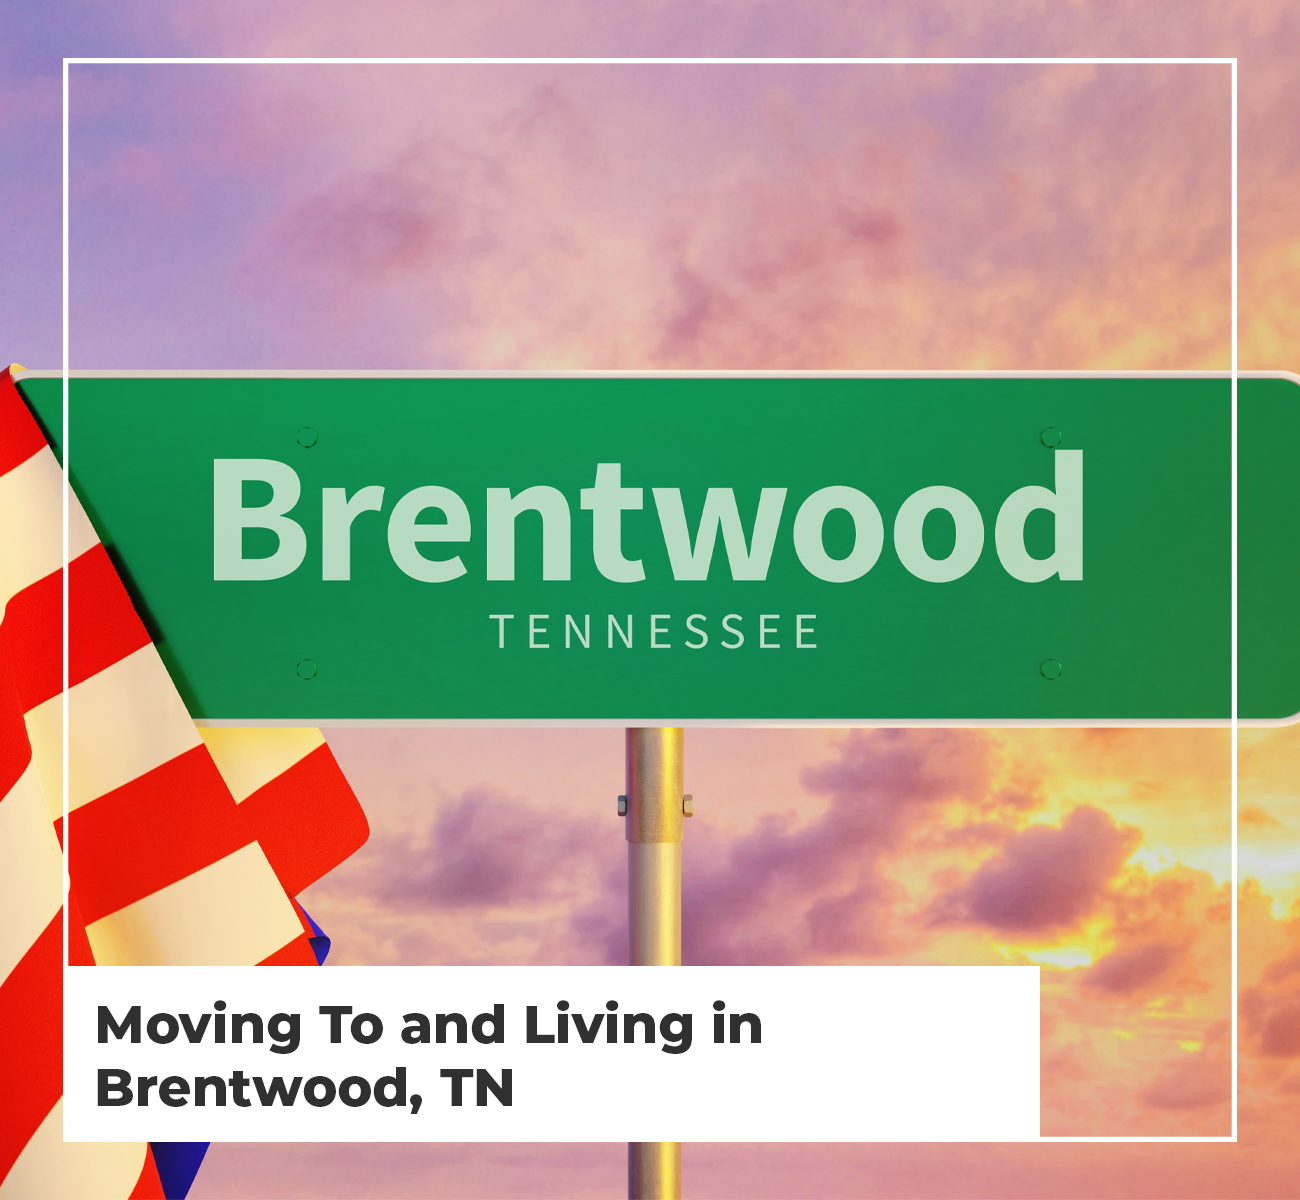 Moving To and Living In Brentwood TN